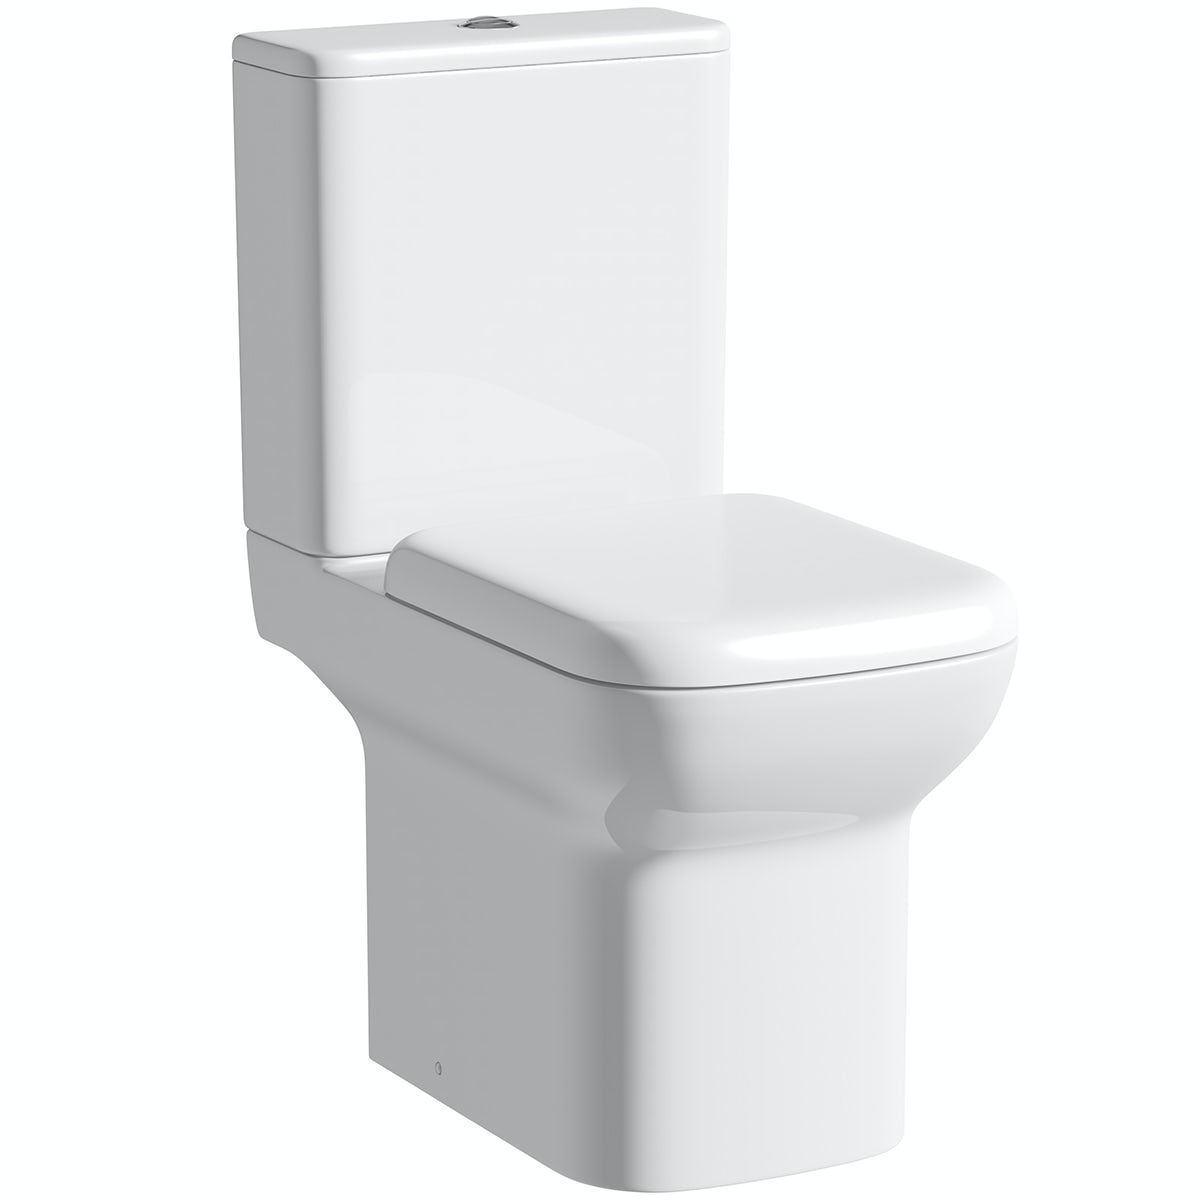 Orchard Lune close coupled toilet with soft close seat with pan connector